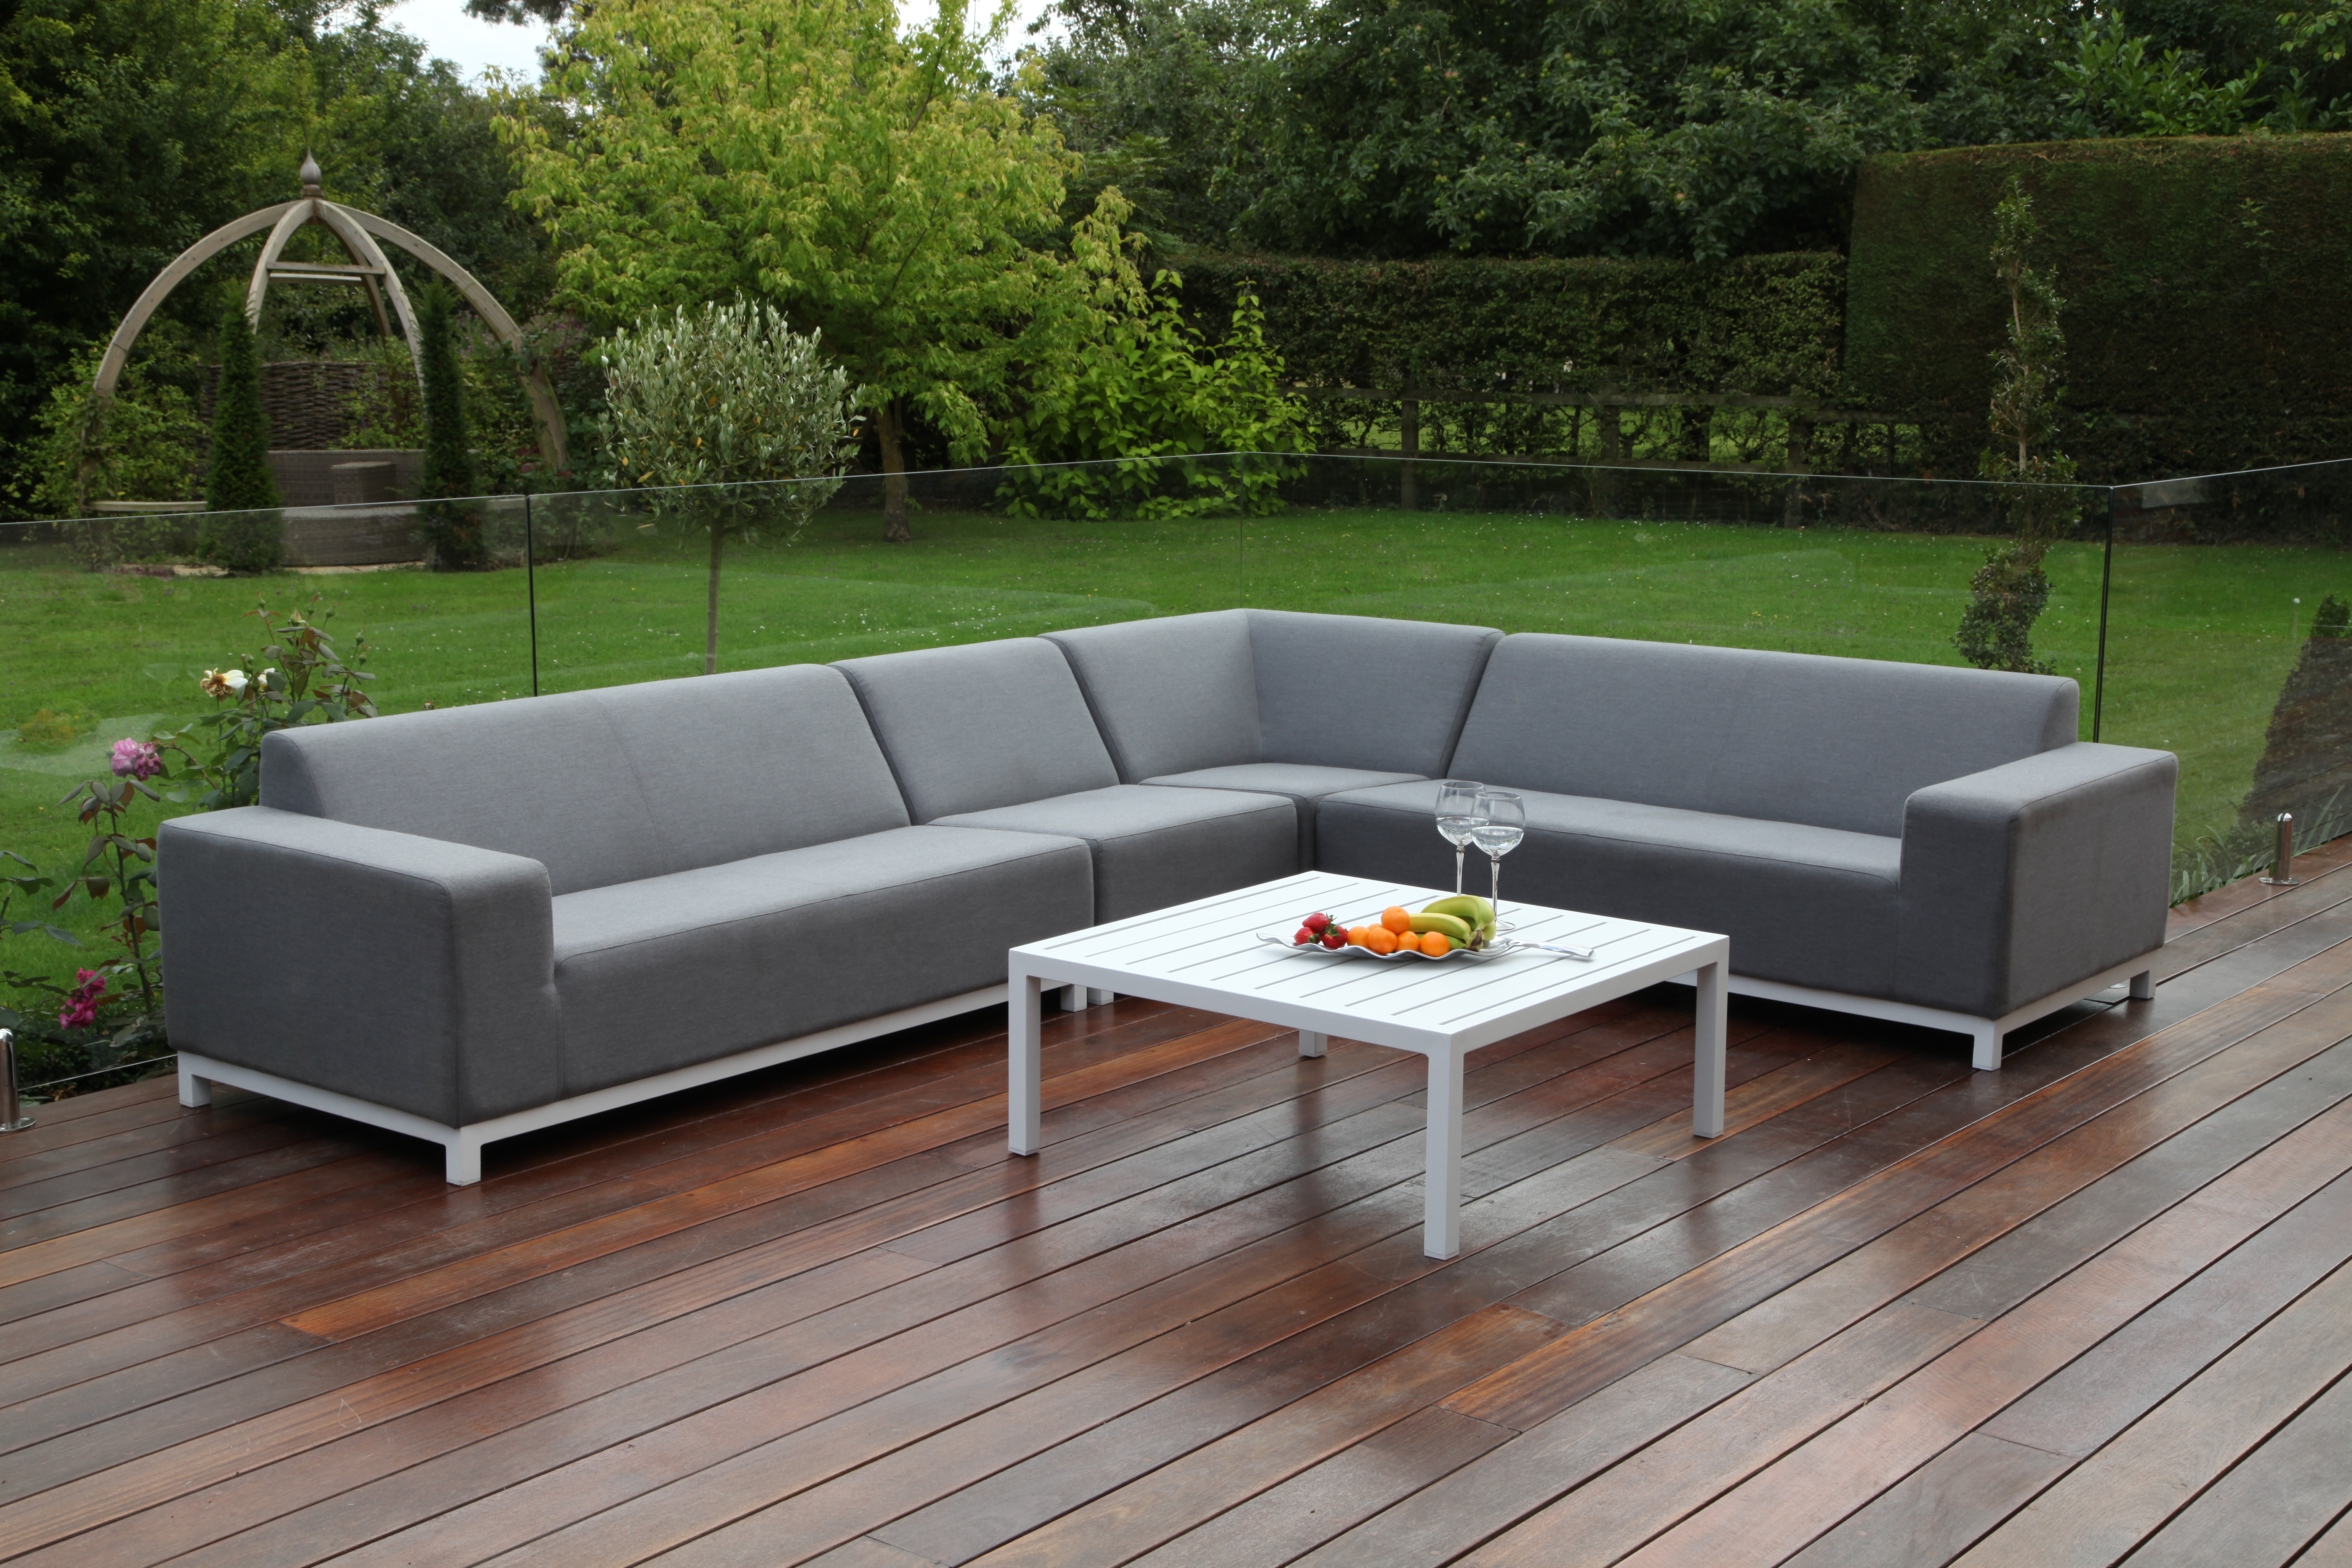 Maze Large Corner sofa with Square Table